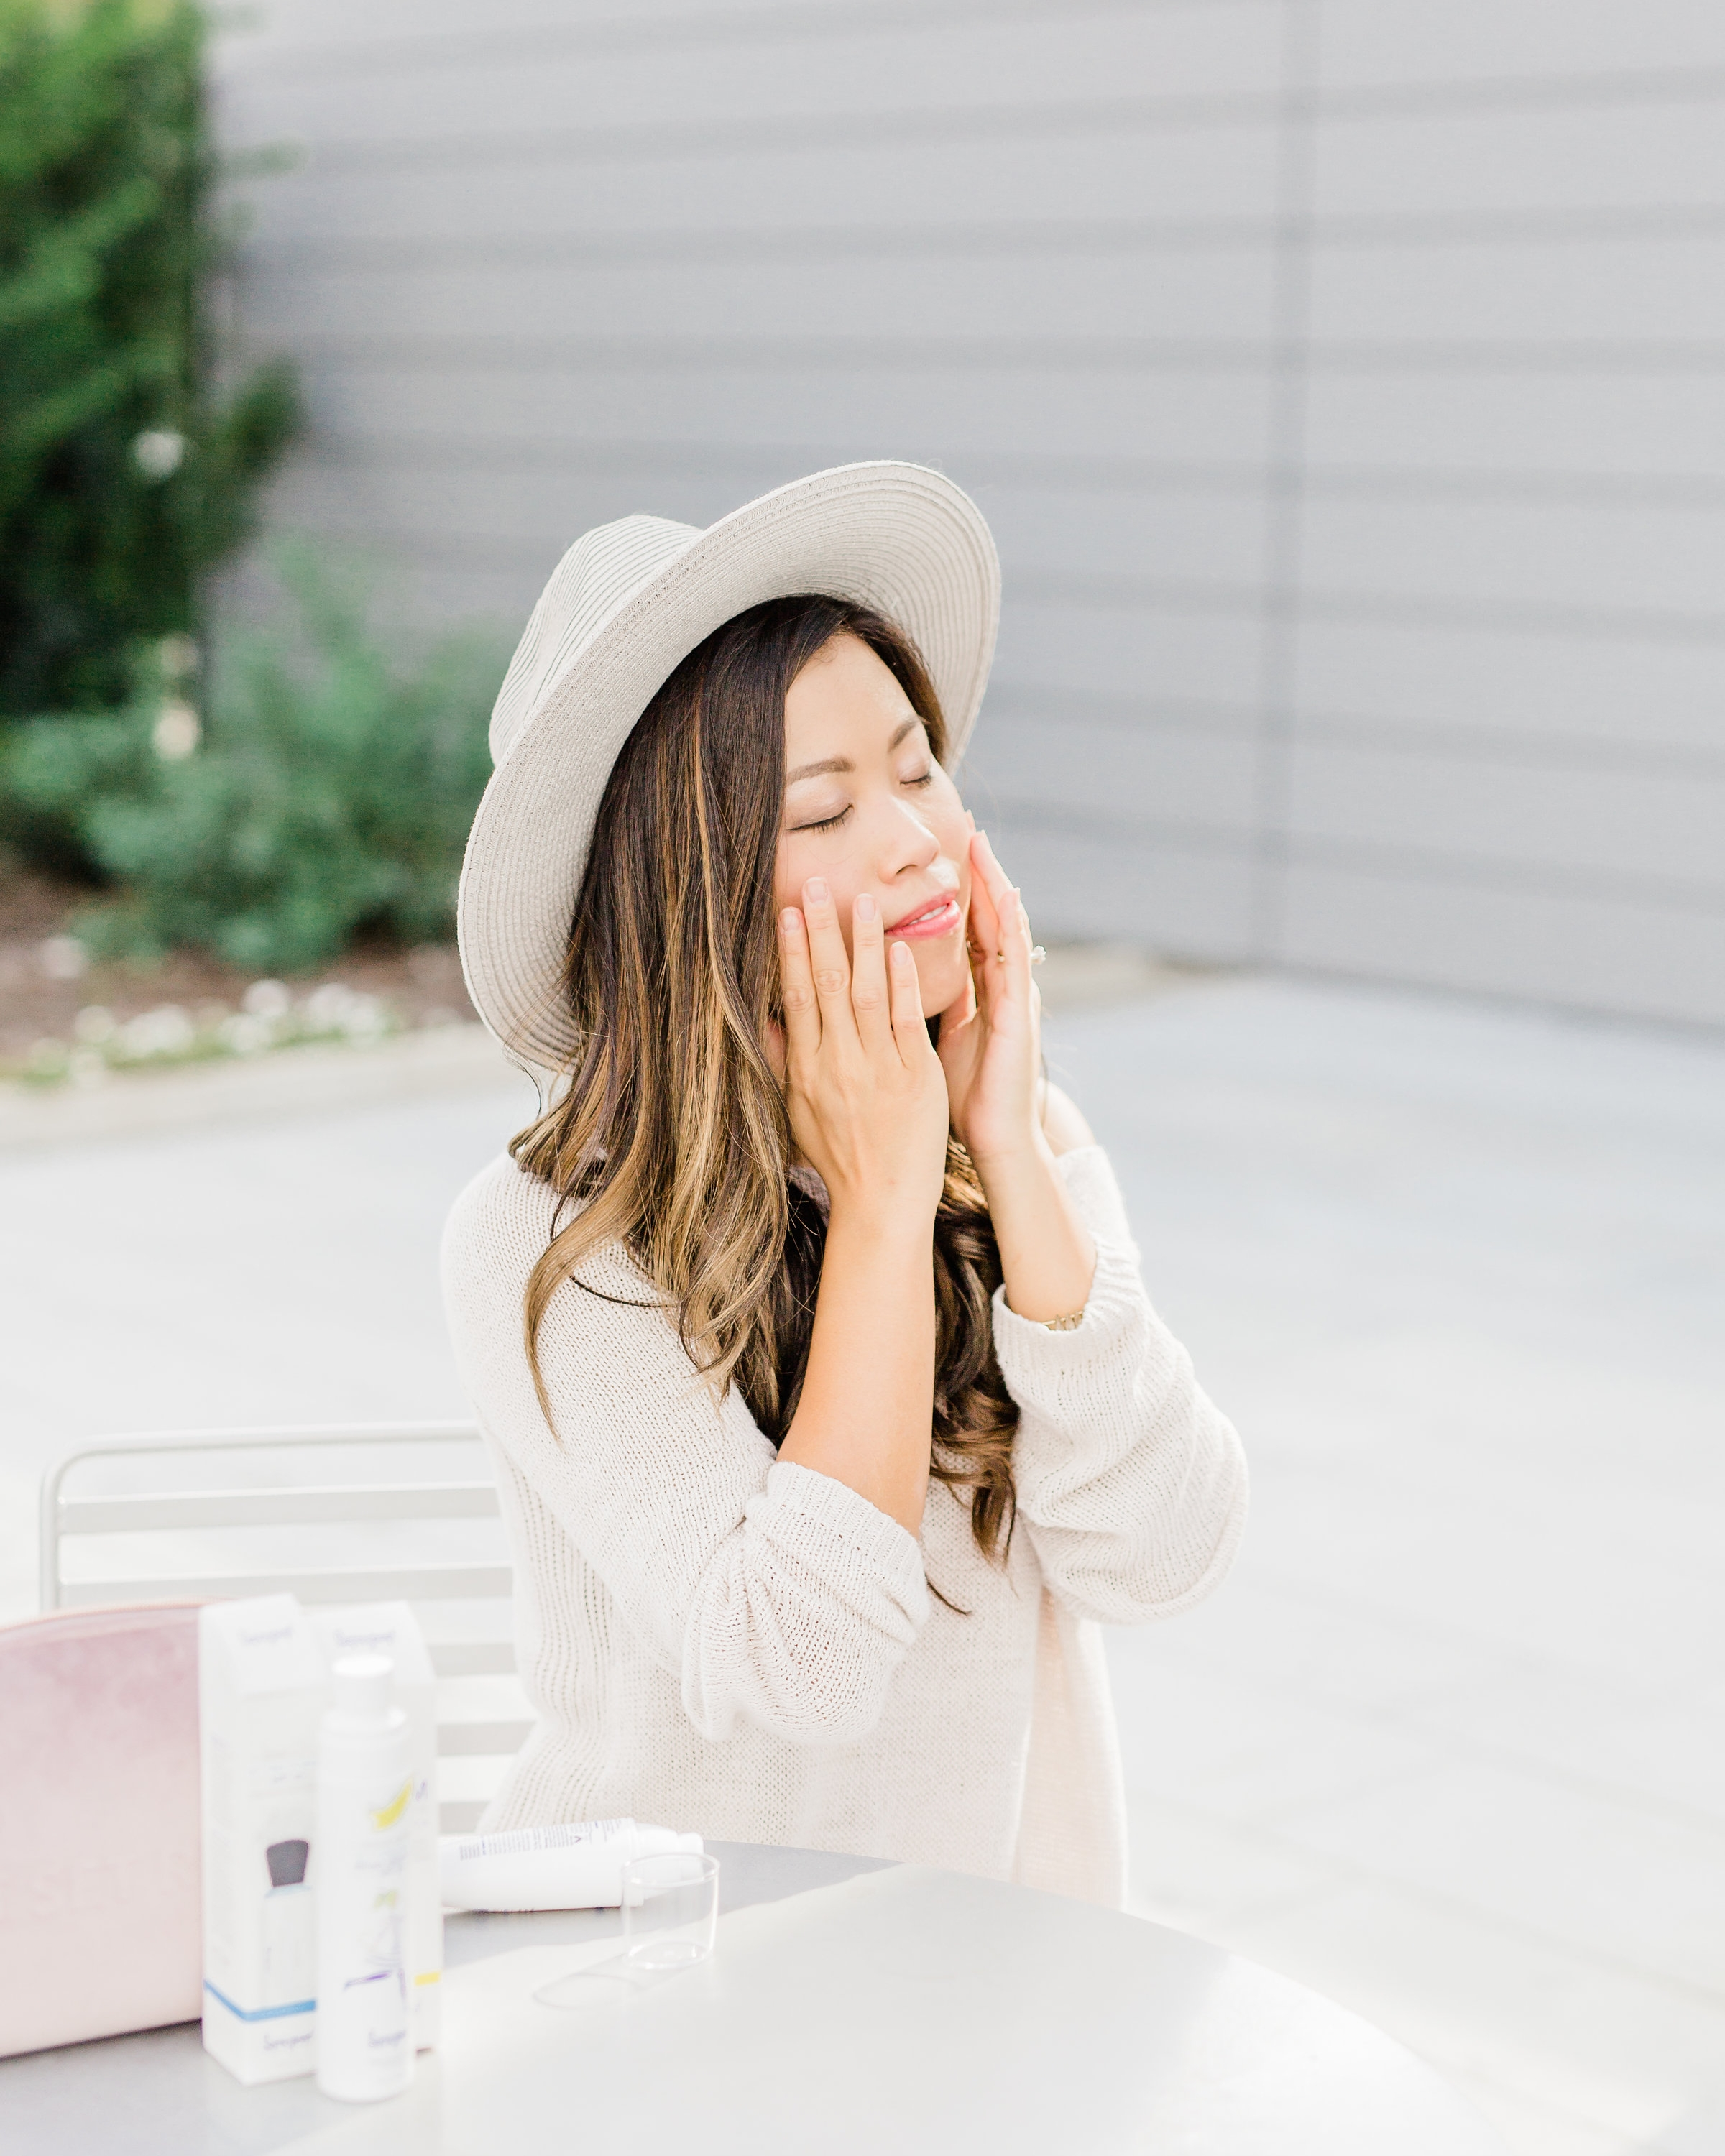 Supergoop! sunscreen routine 5 minute make up beauty advice for aging skin